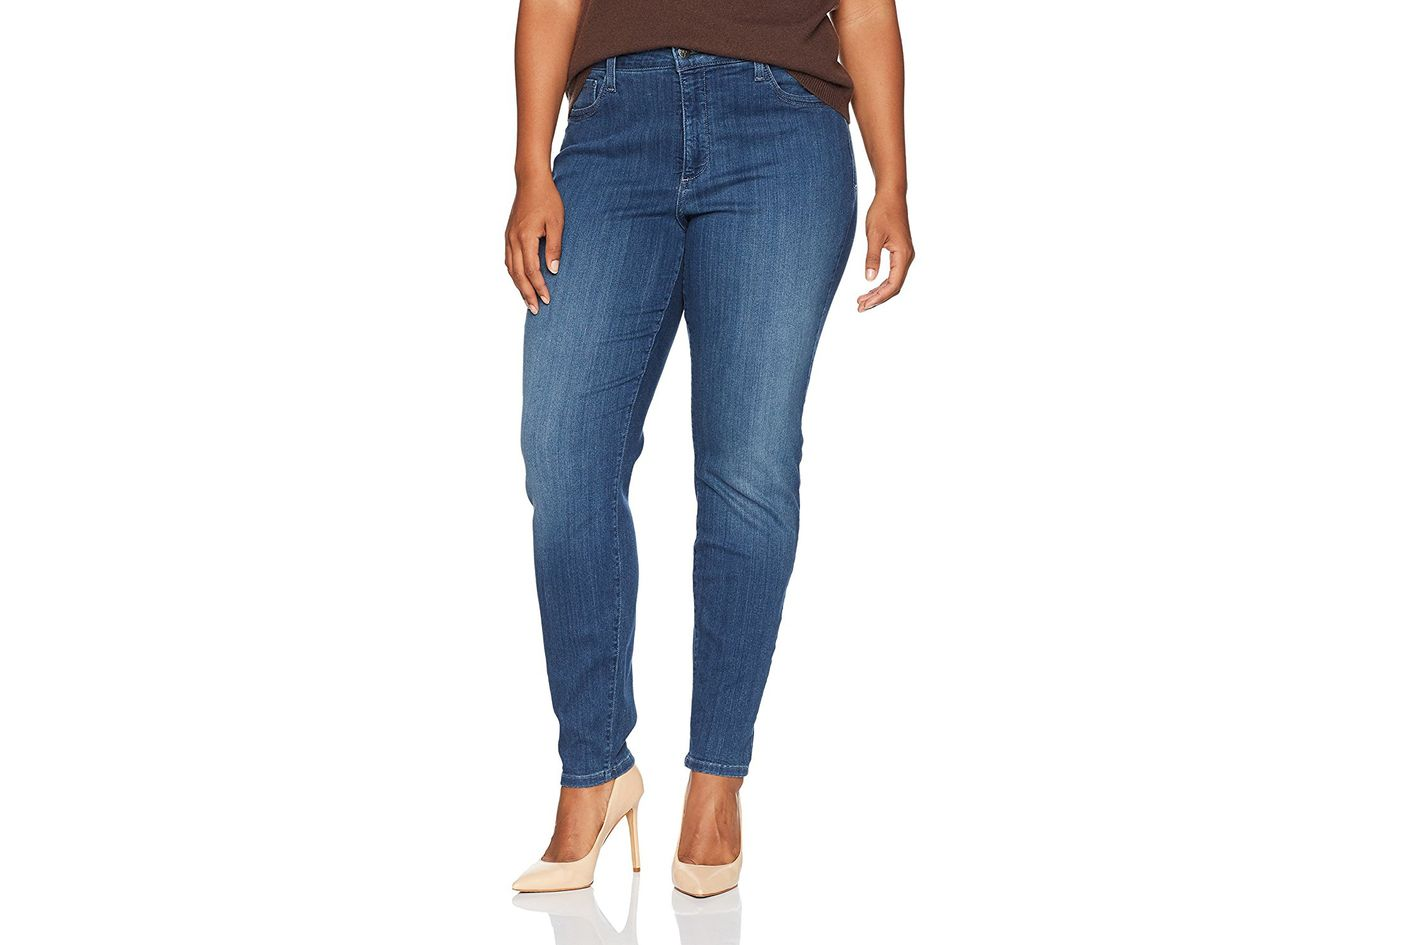 72ab76ad36b71 10 Best Plus-Size Jeans According to Real Women 2018